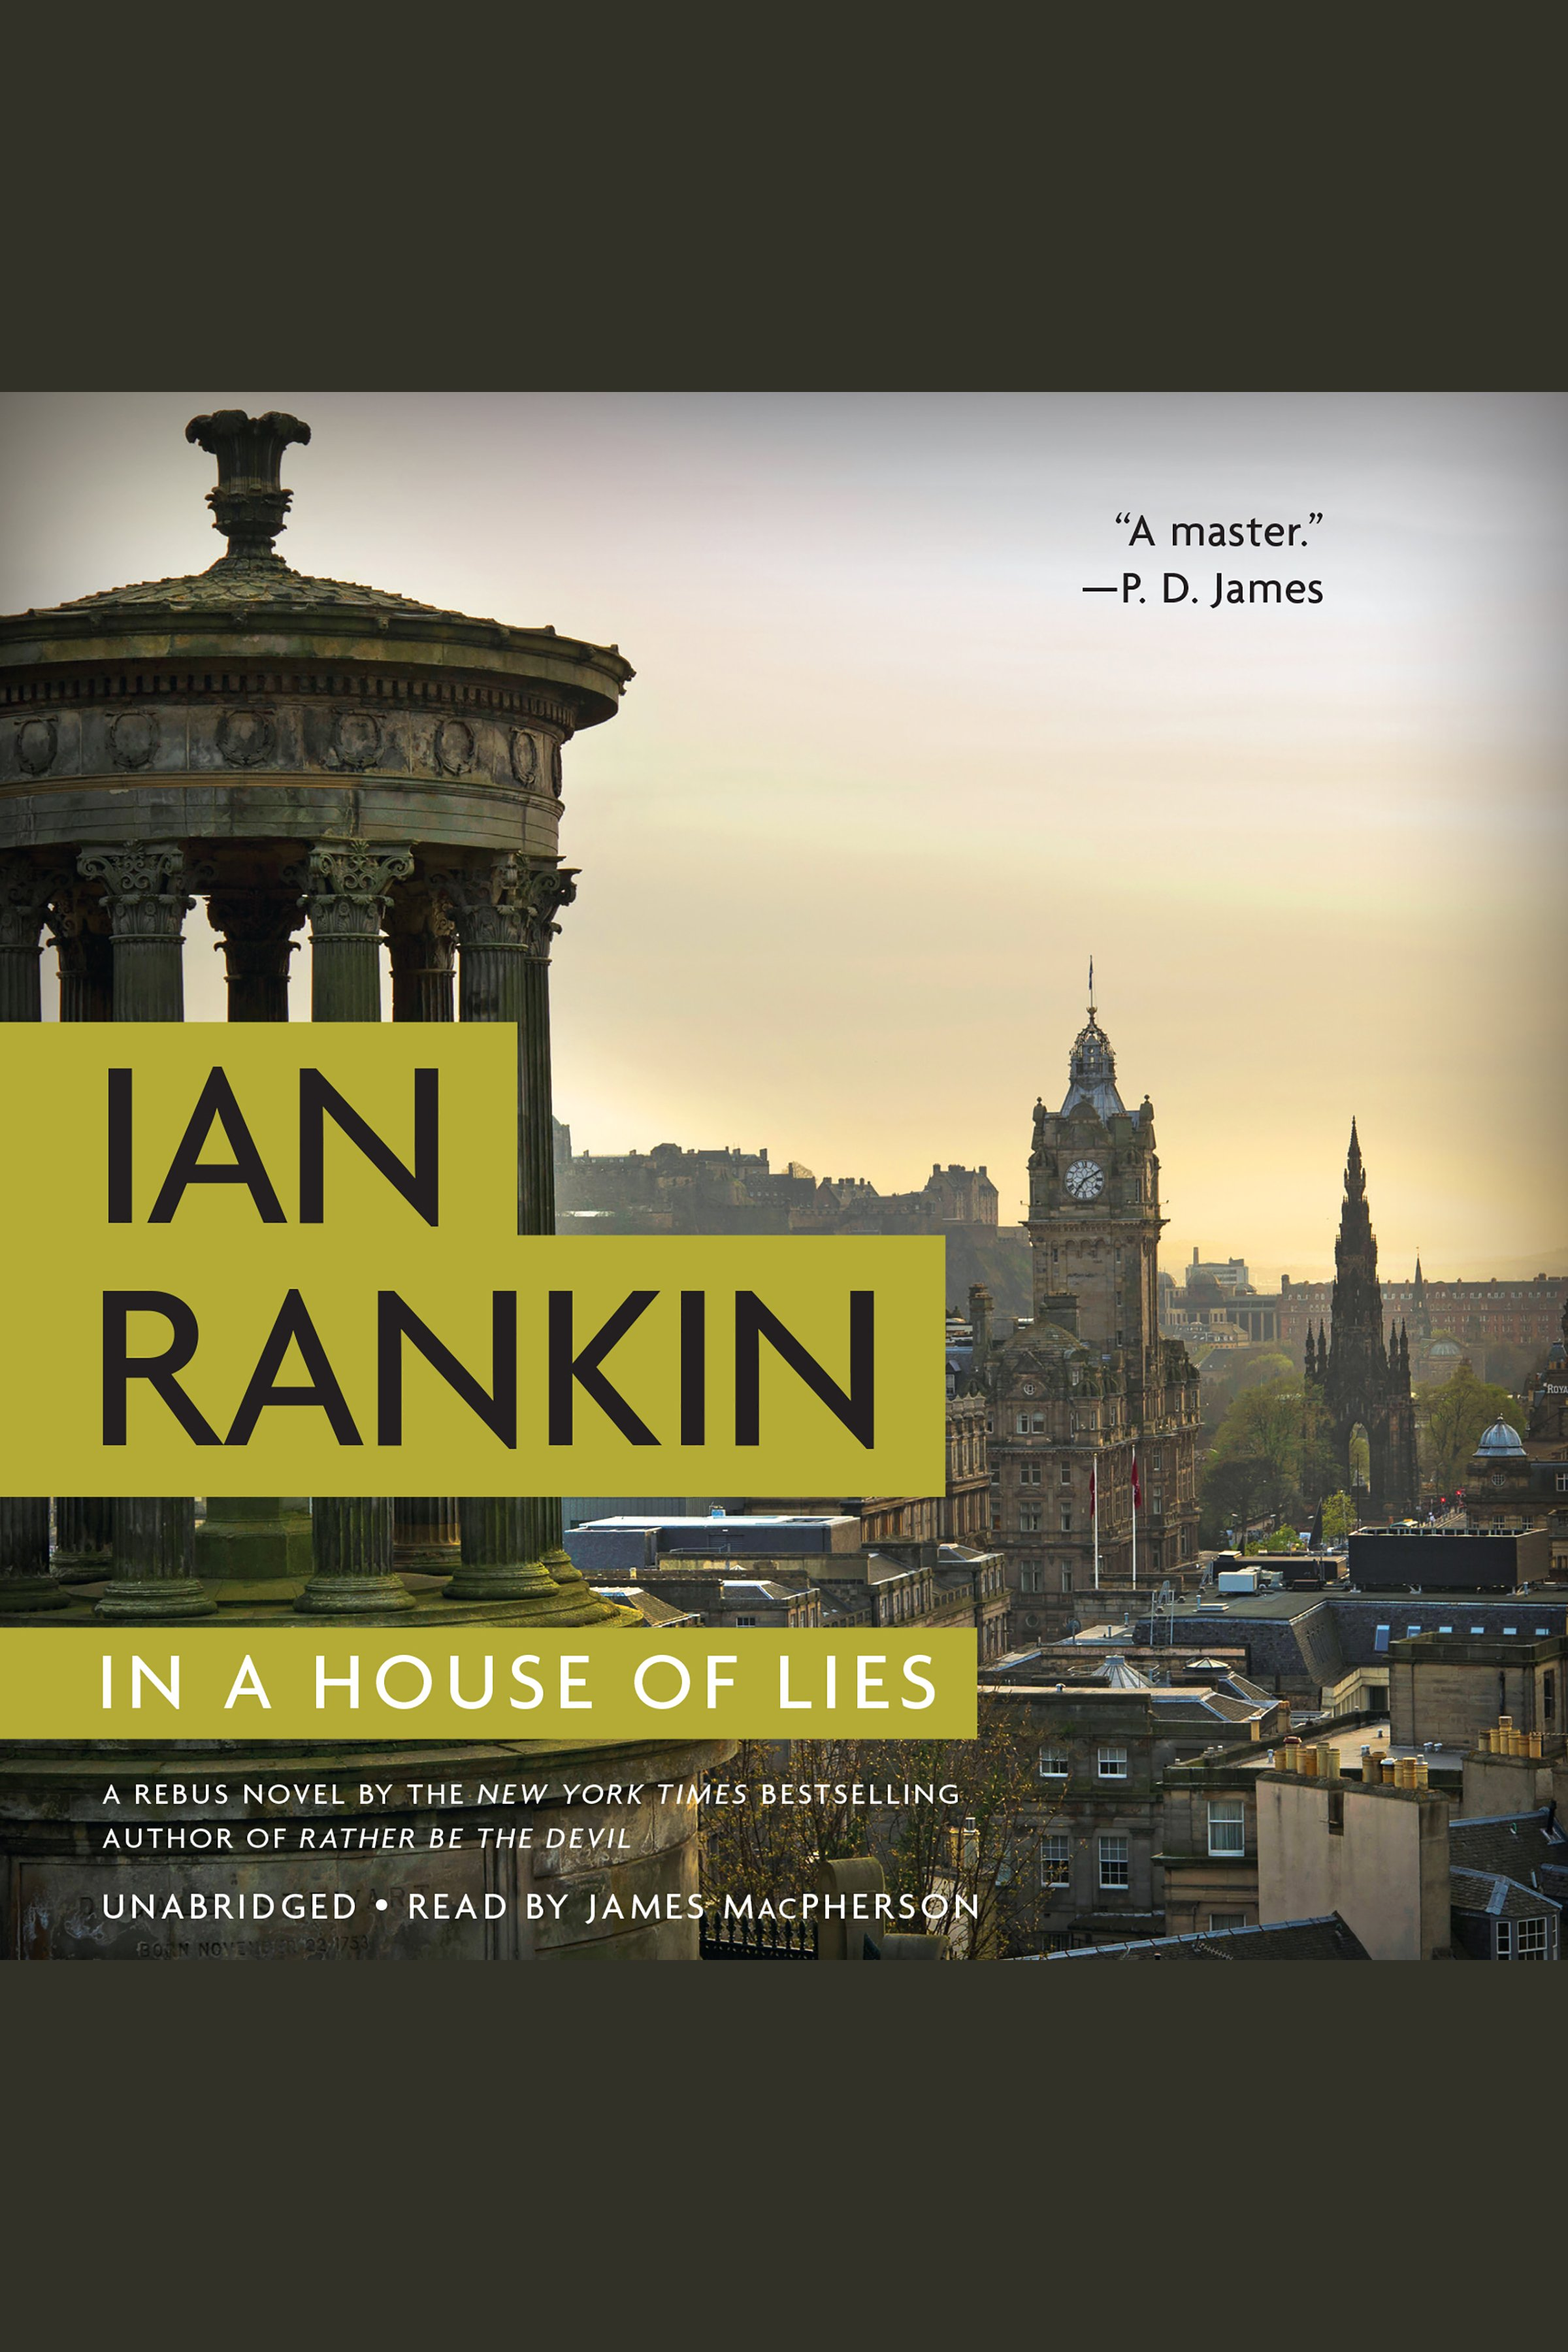 In a house of lies cover image